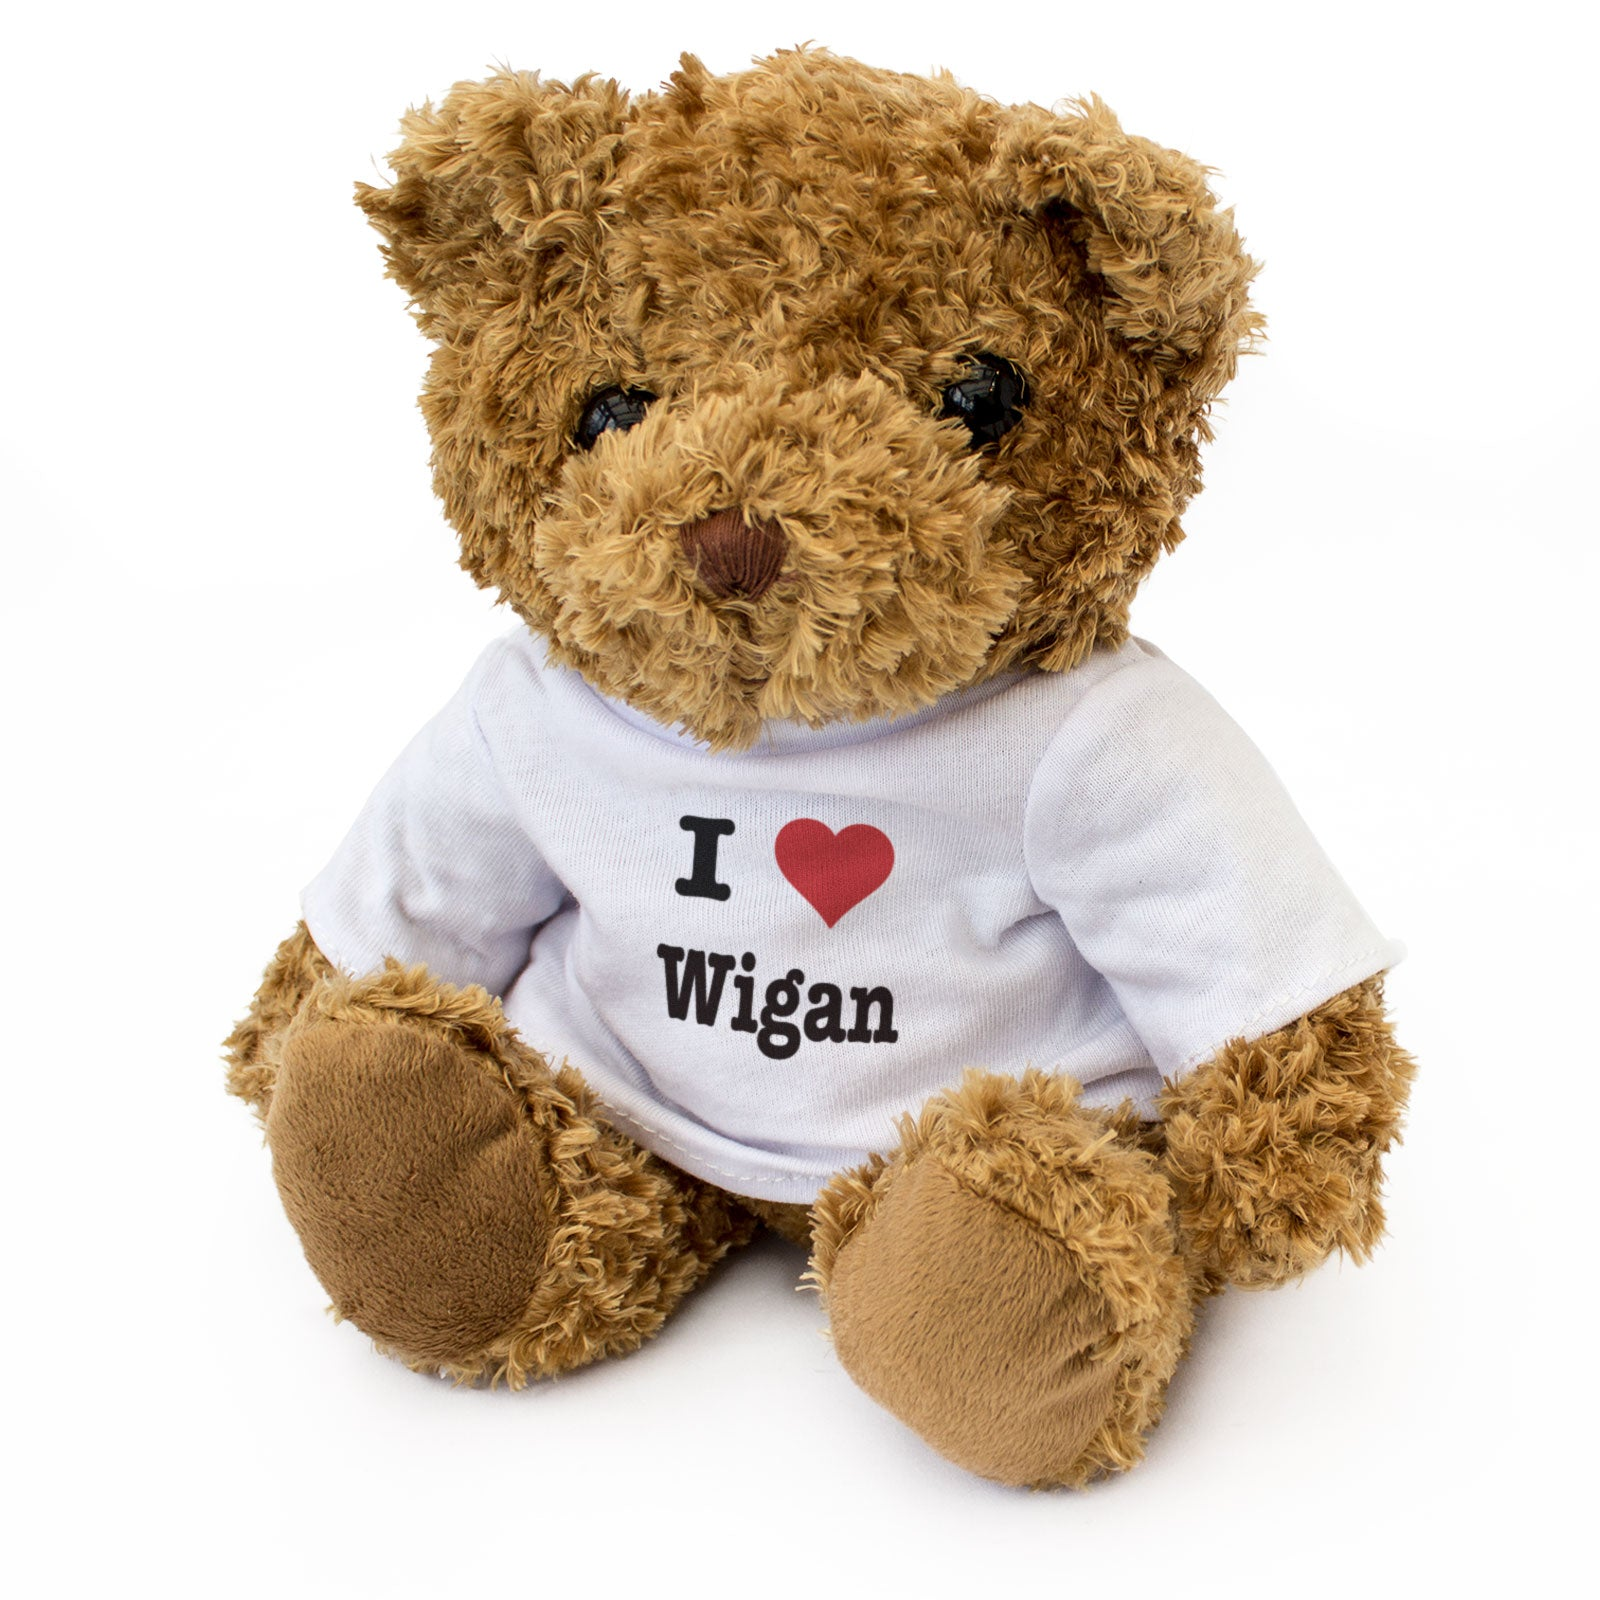 I Love Wigan - Teddy Bear